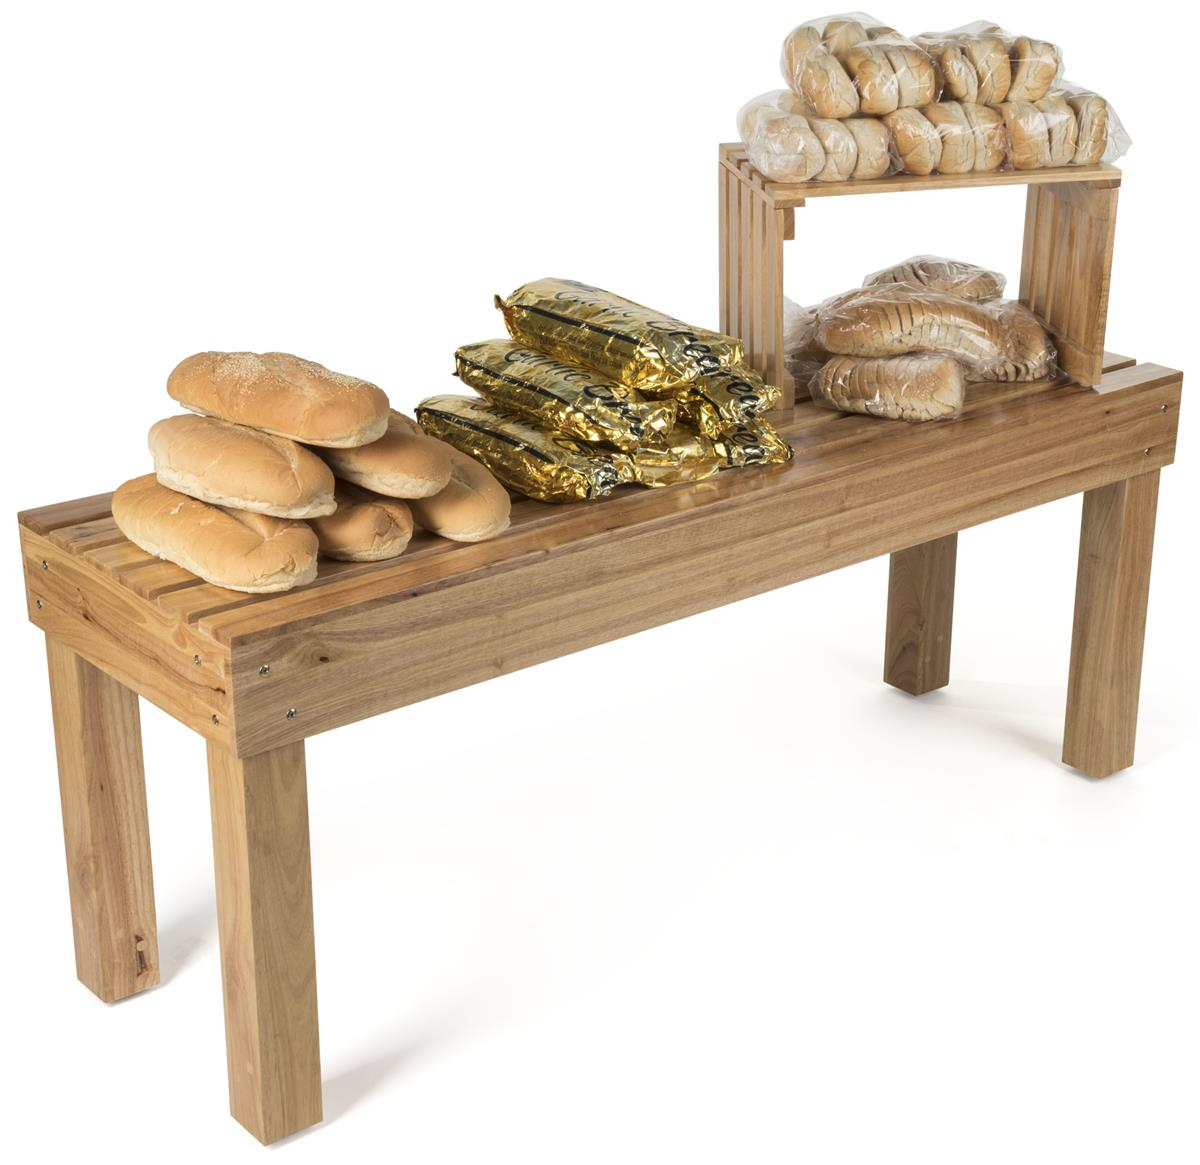 Wooden stacking tables table topper included